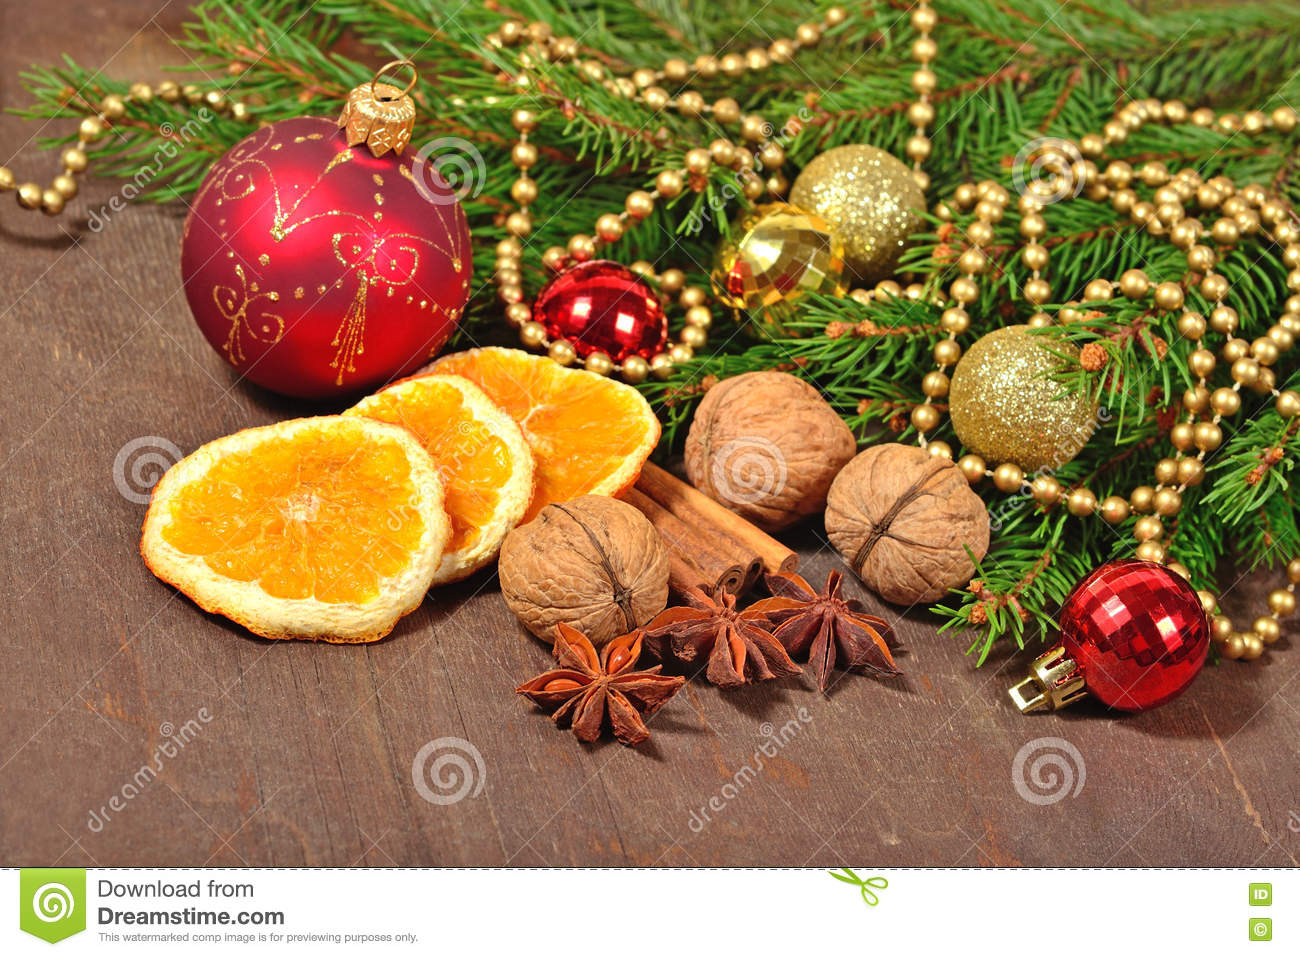 Different Kinds Of Spices Nuts And Dried Oranges Christmas Dec